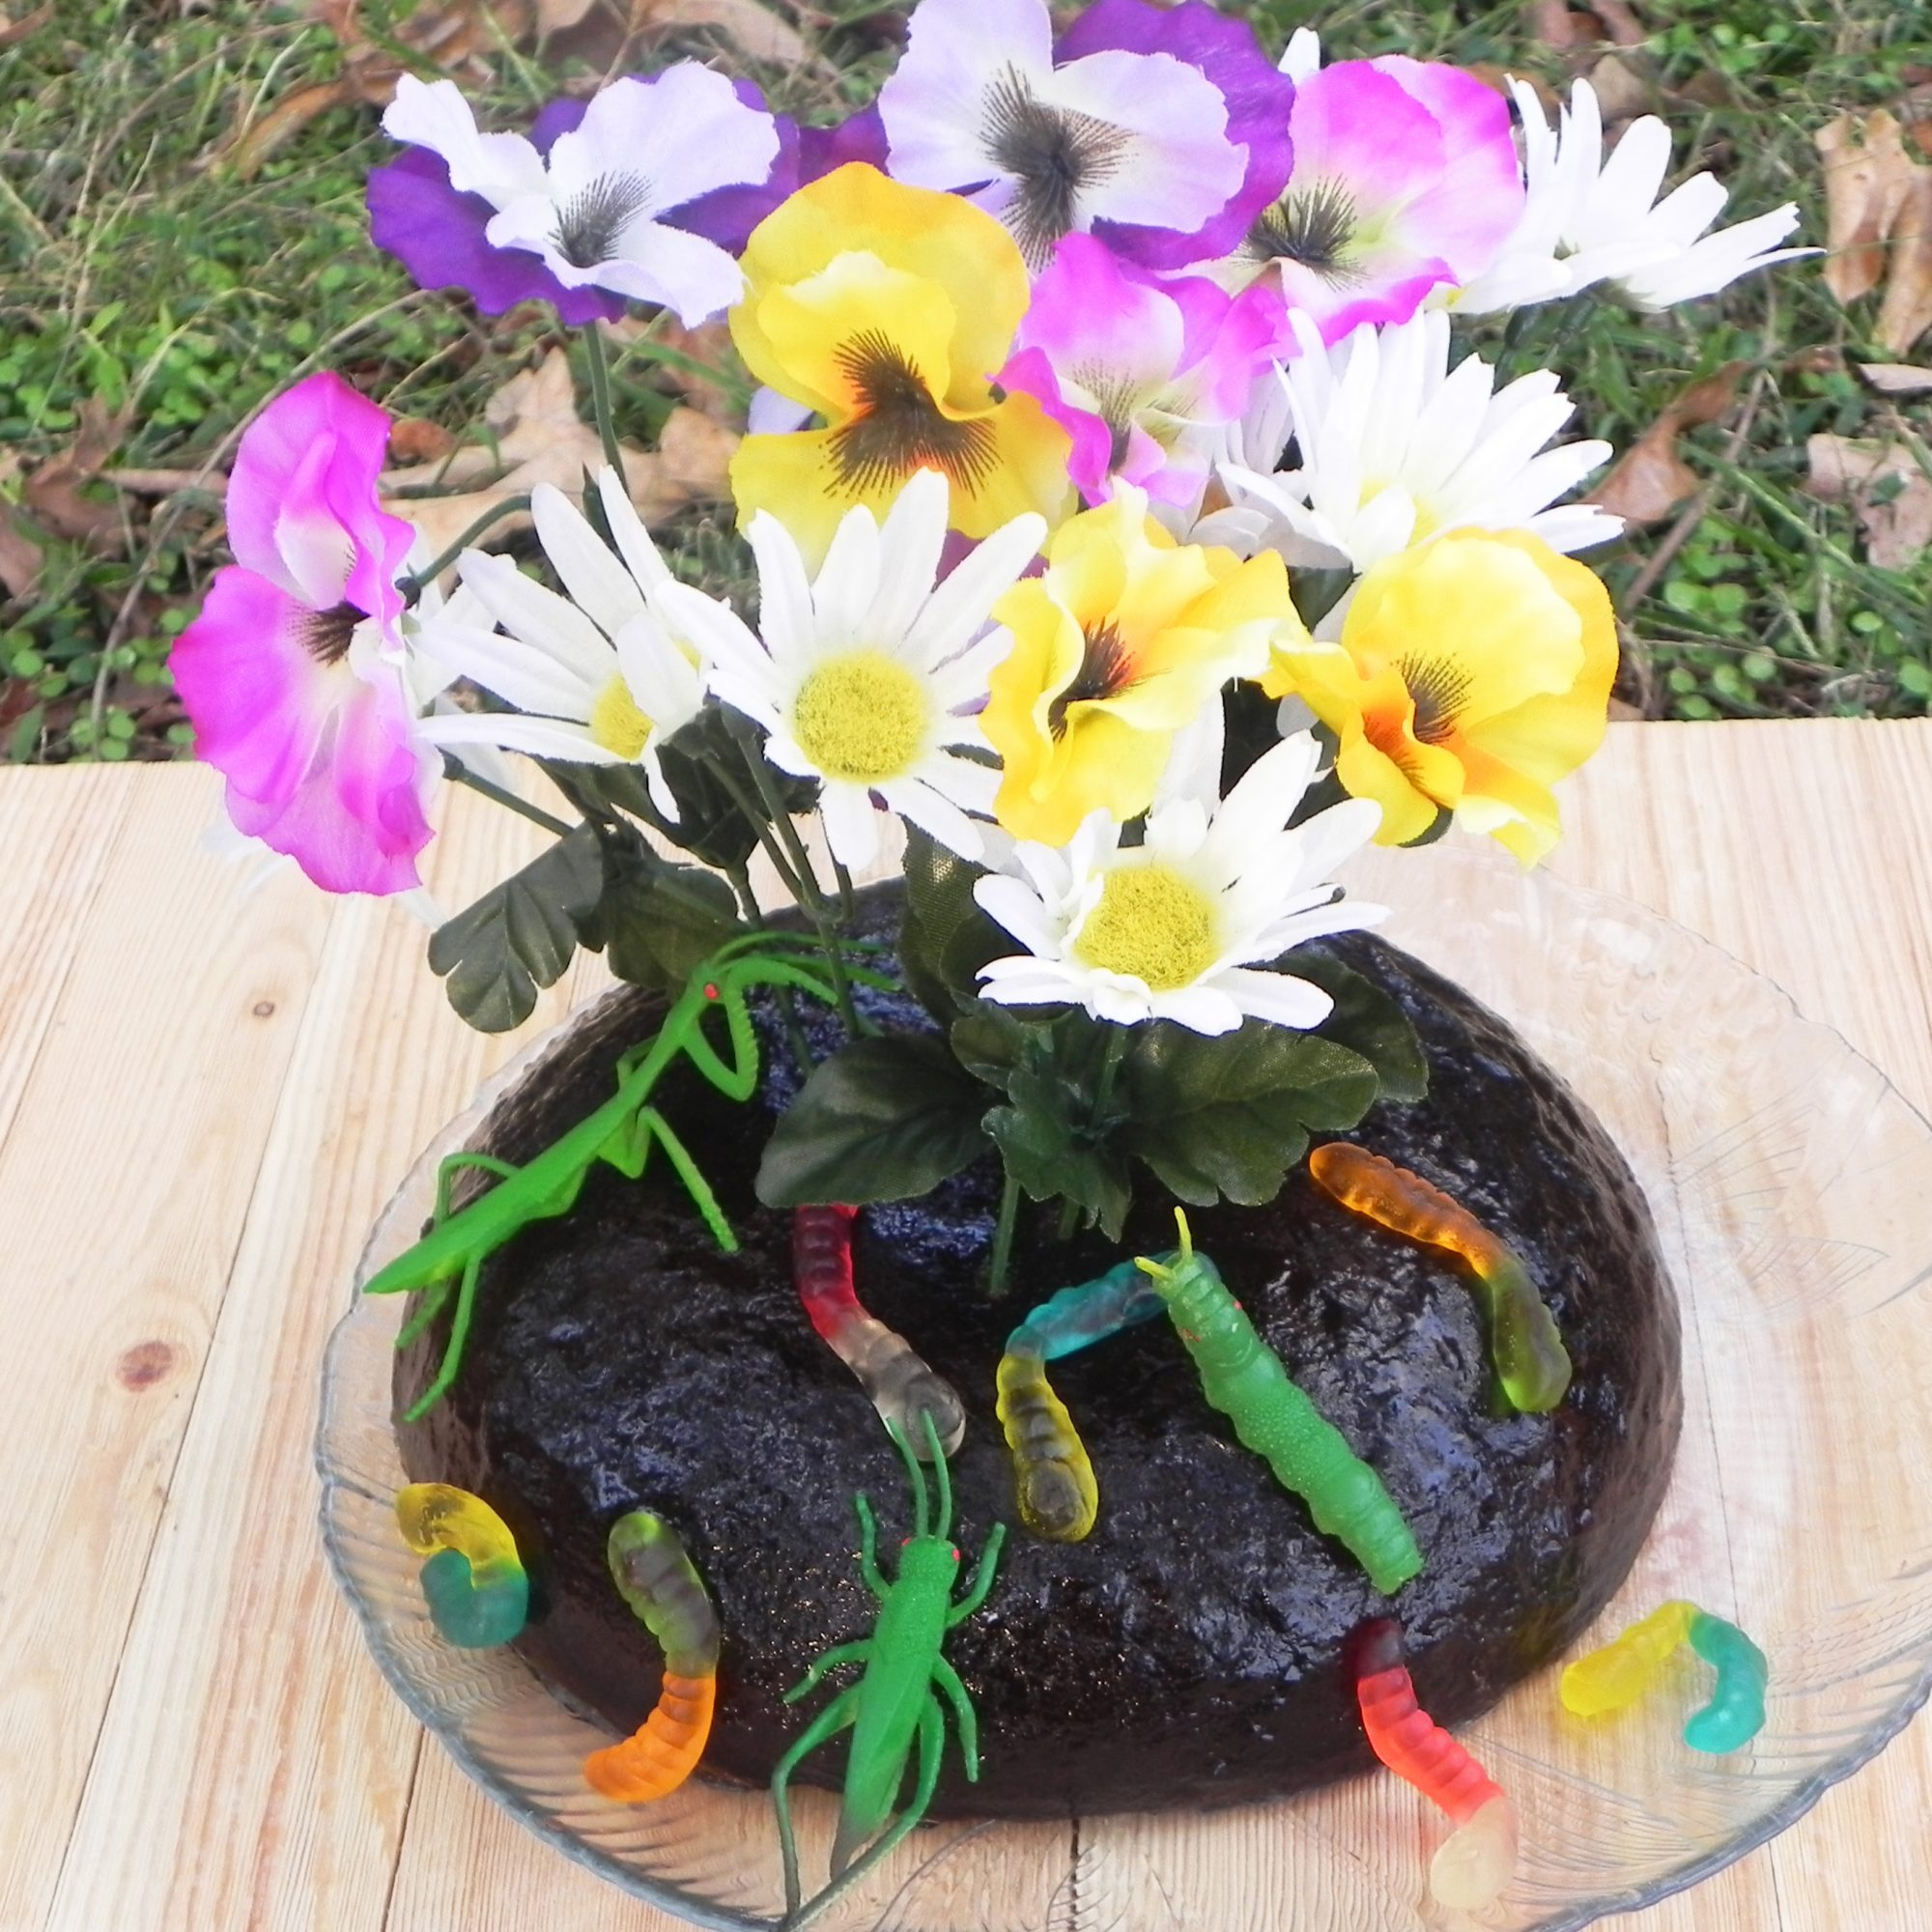 Topsoil Garden Jello decorated with gummy worms